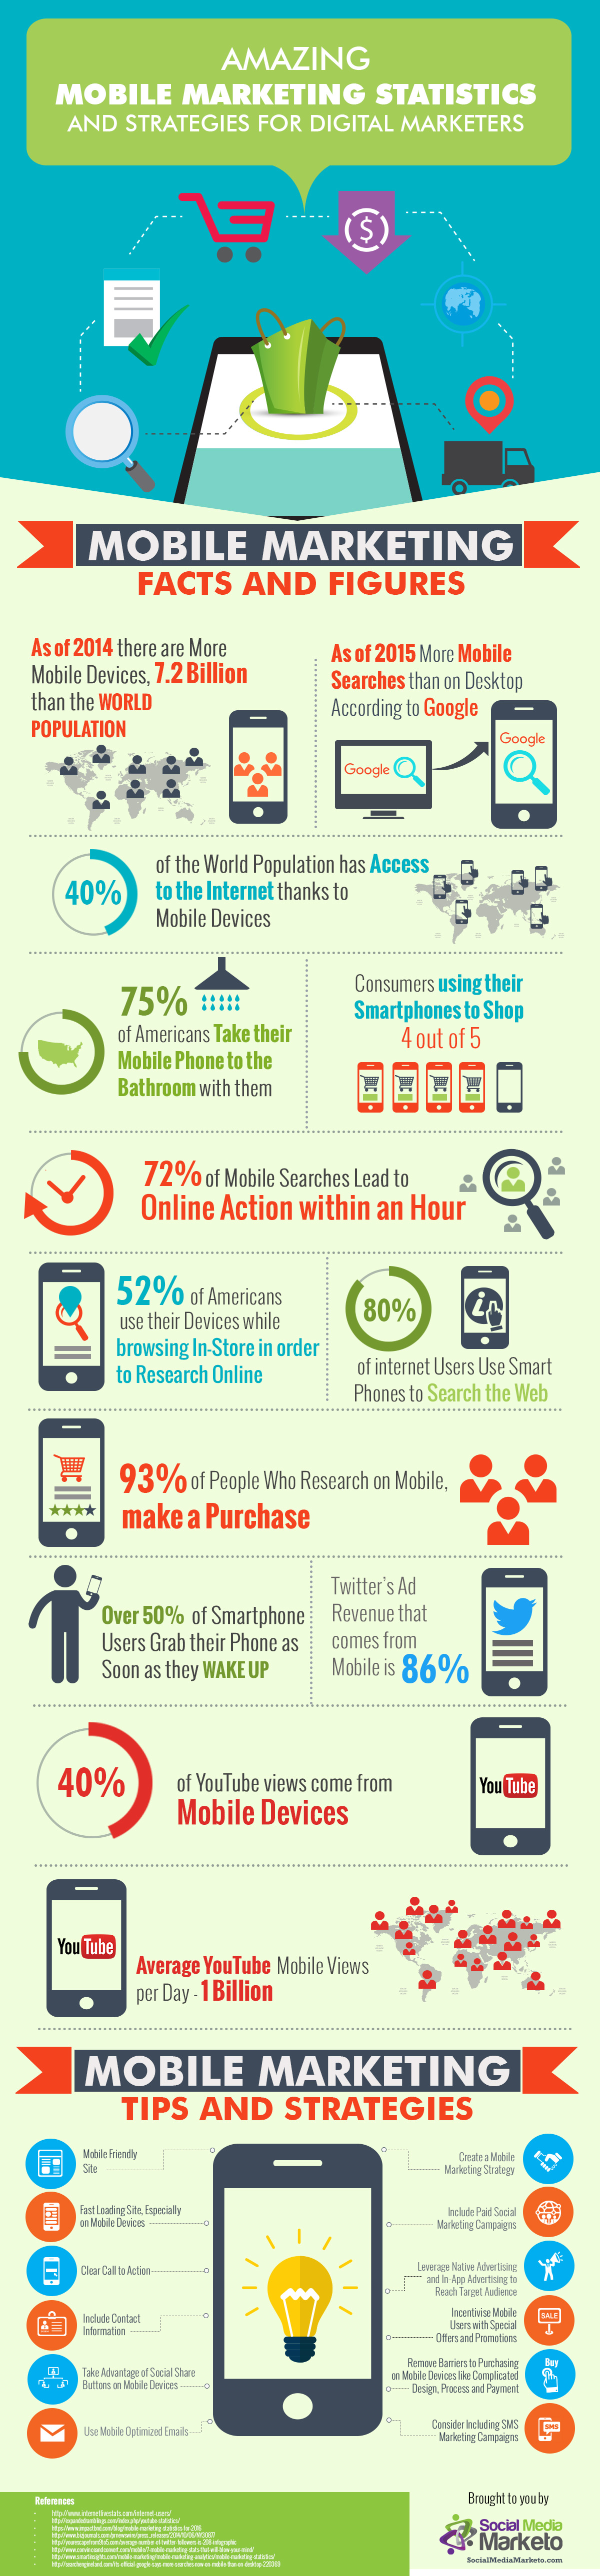 Mobile Marketing - Infographic - Image 1